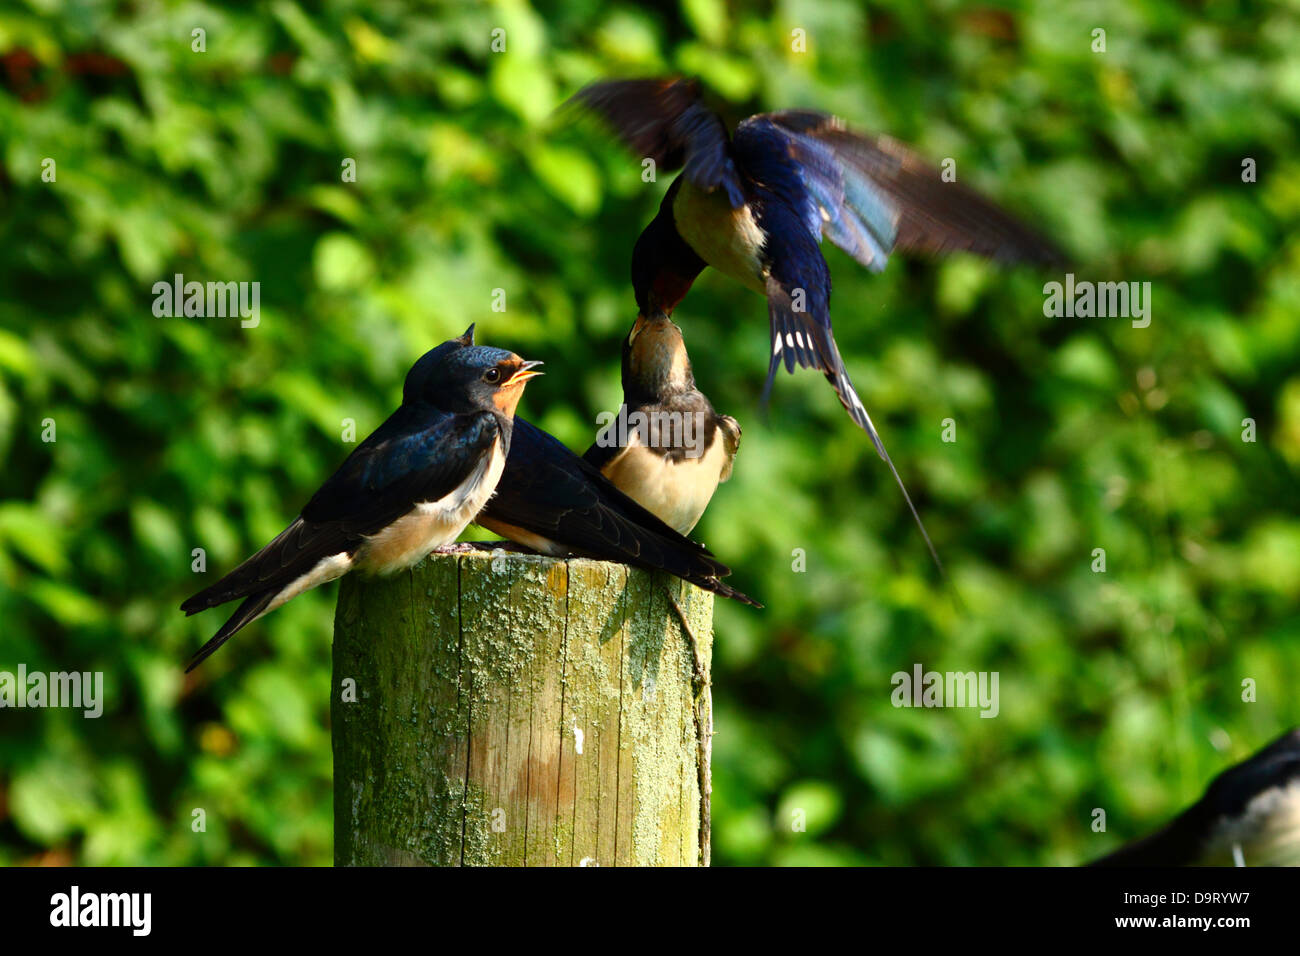 baby swallows being fed by adult - Stock Image